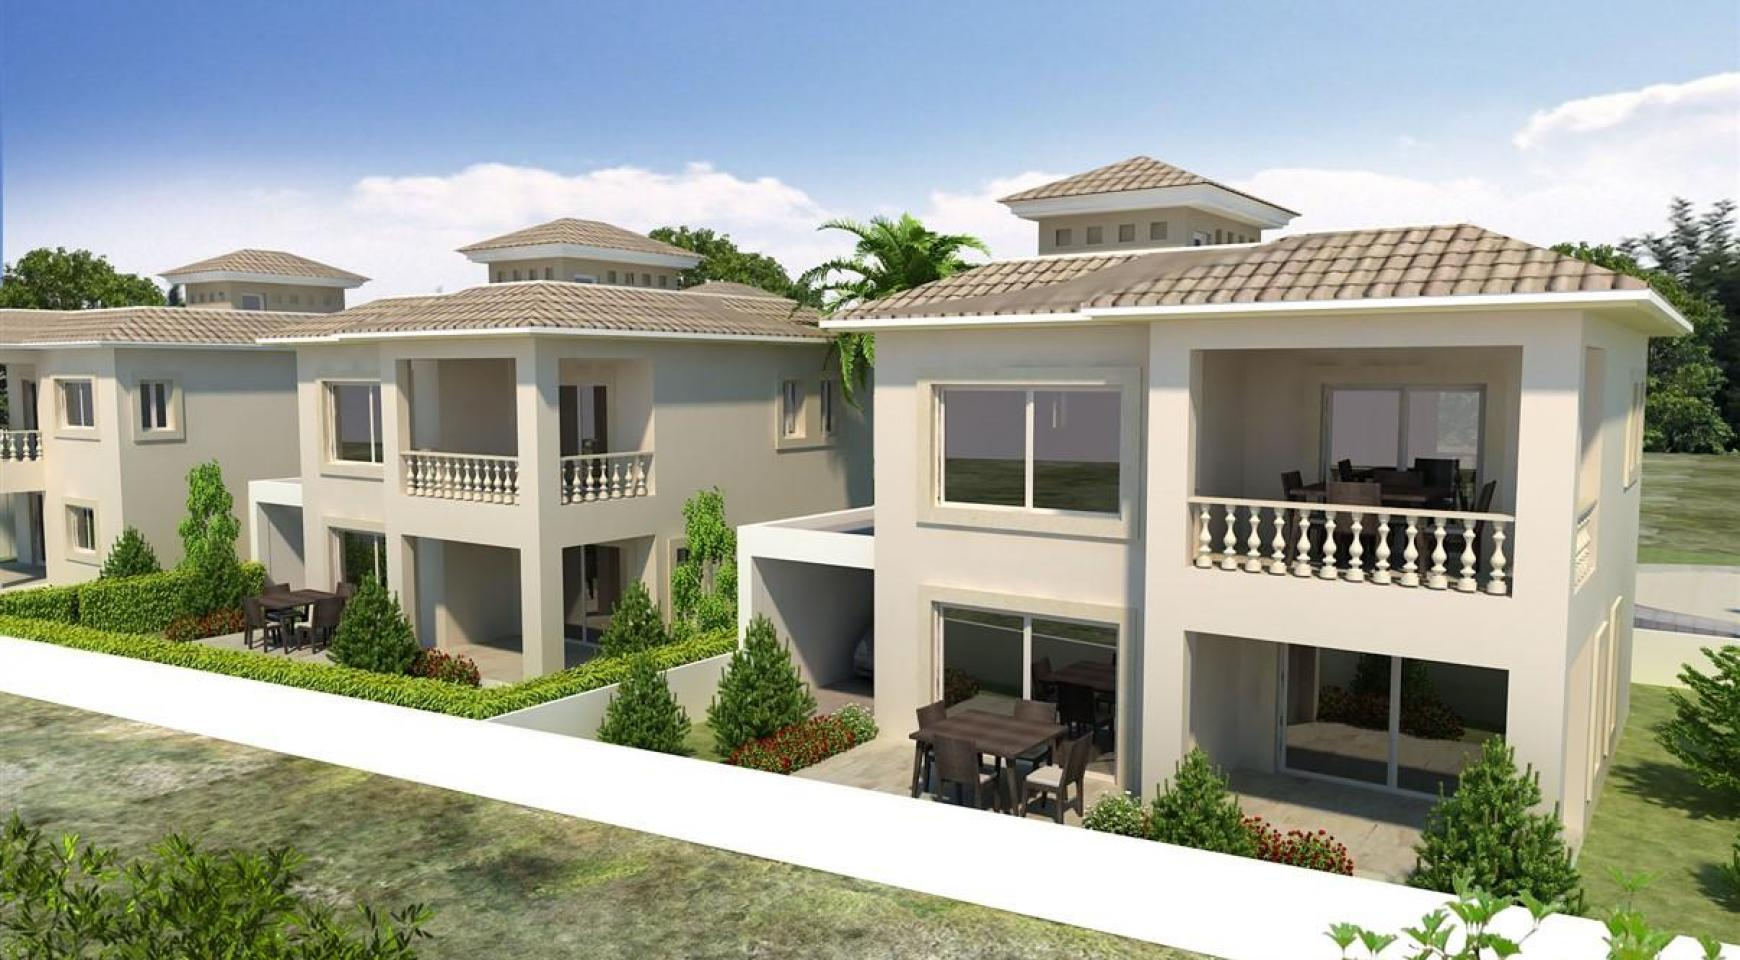 Modern 3 Bedroom Villa in a New Project - 20